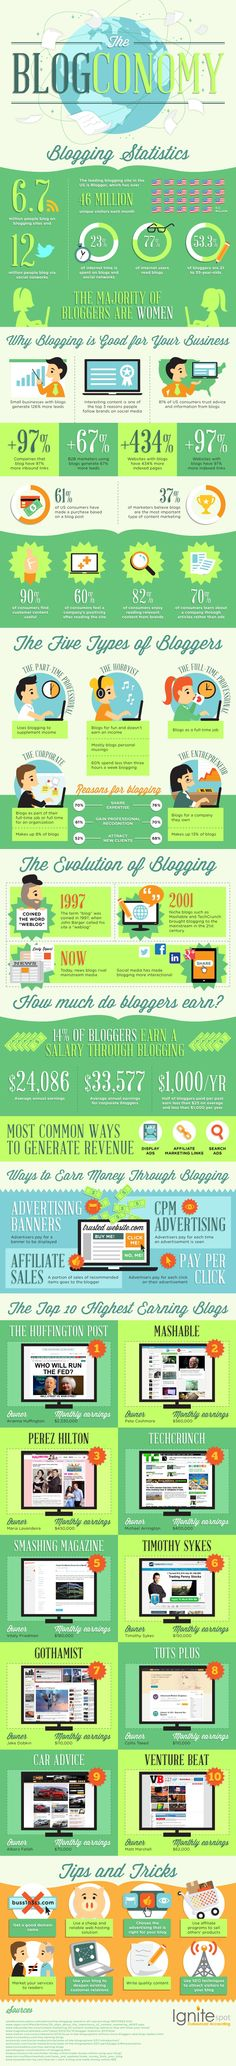 All you need to know about Blogs. Bespoke Social Media & Marketing